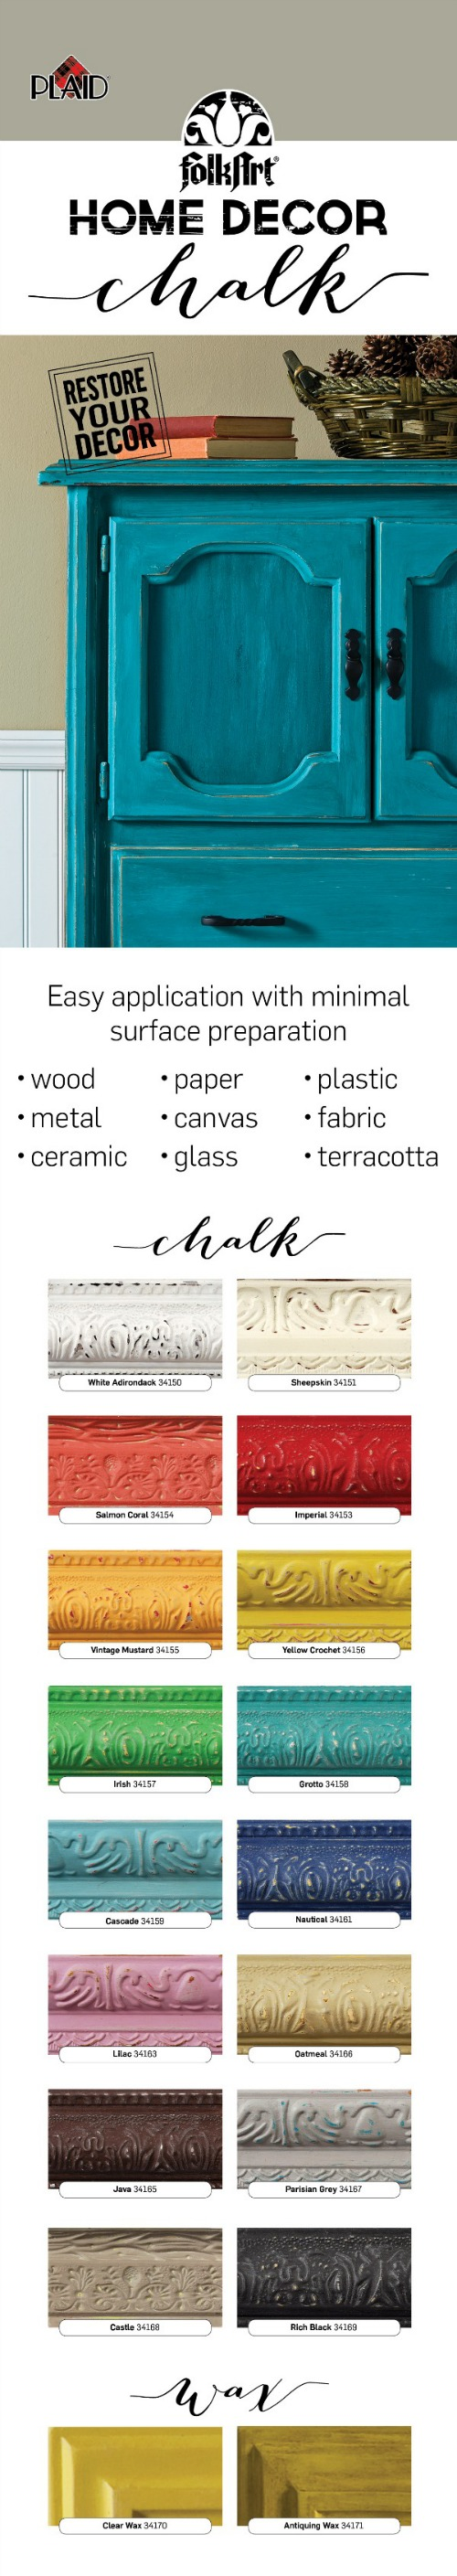 Home Decor Chalk Paint Home Design Ideas